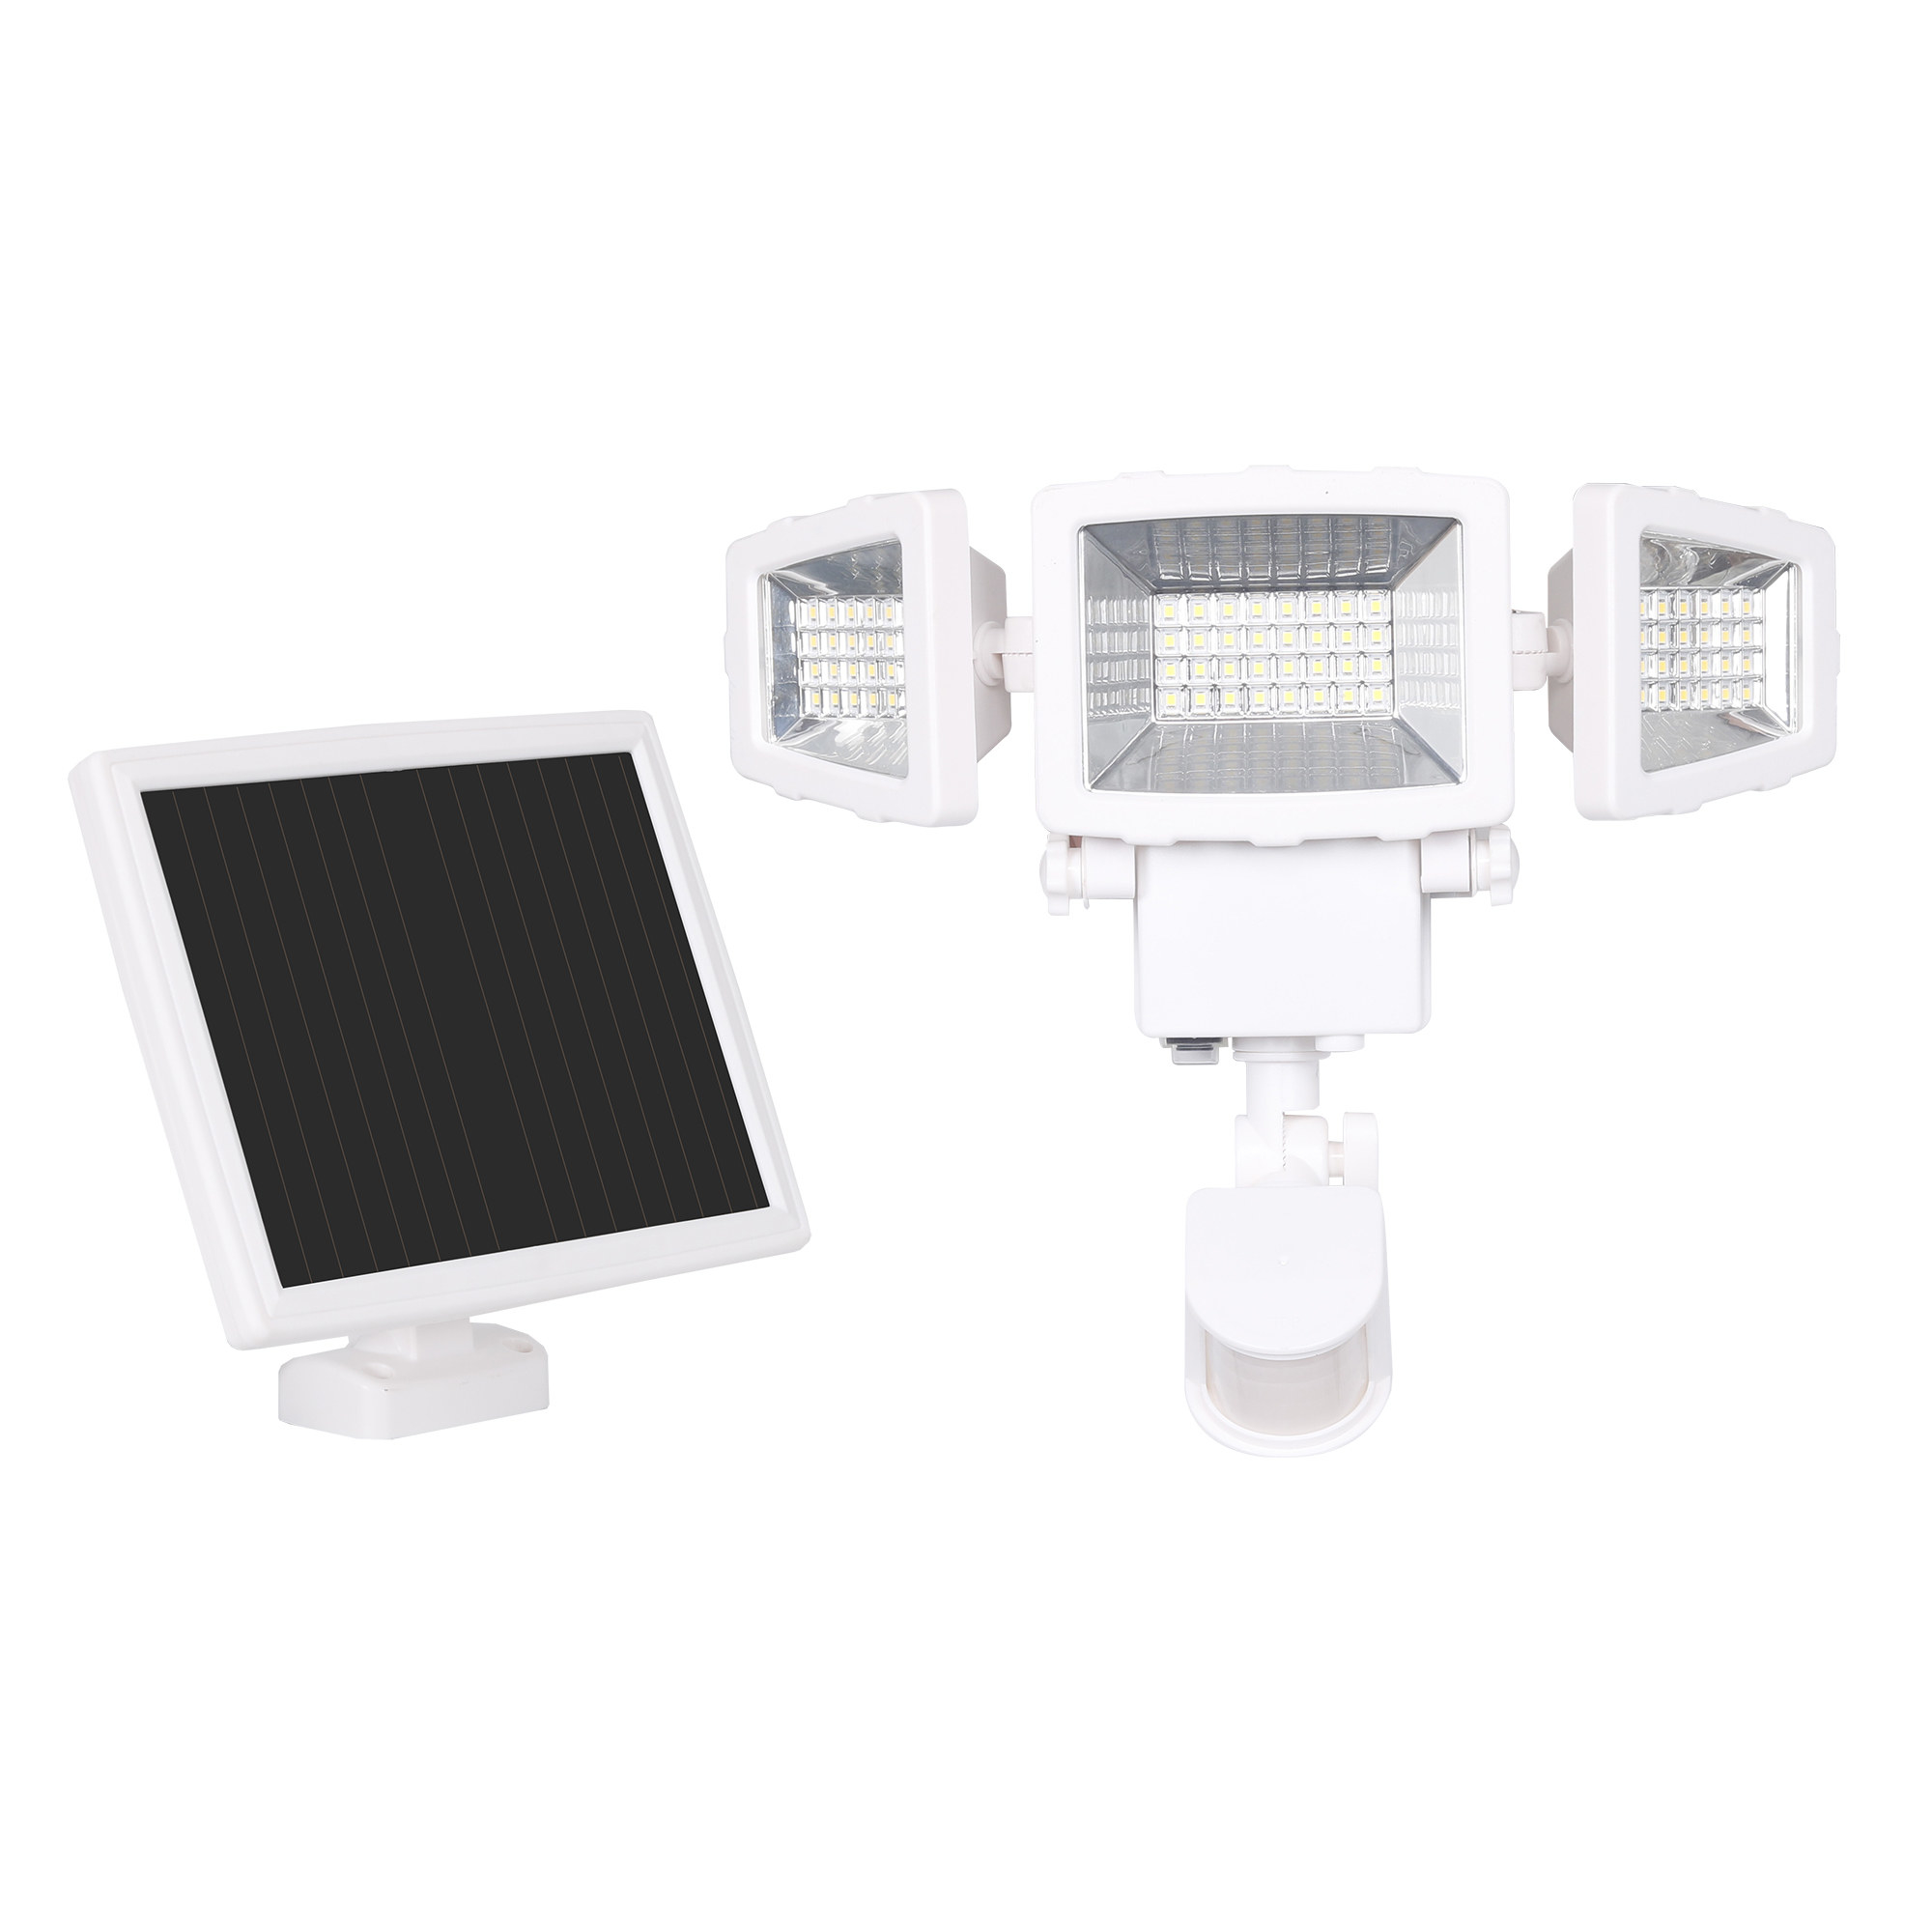 The white solar panel and security light